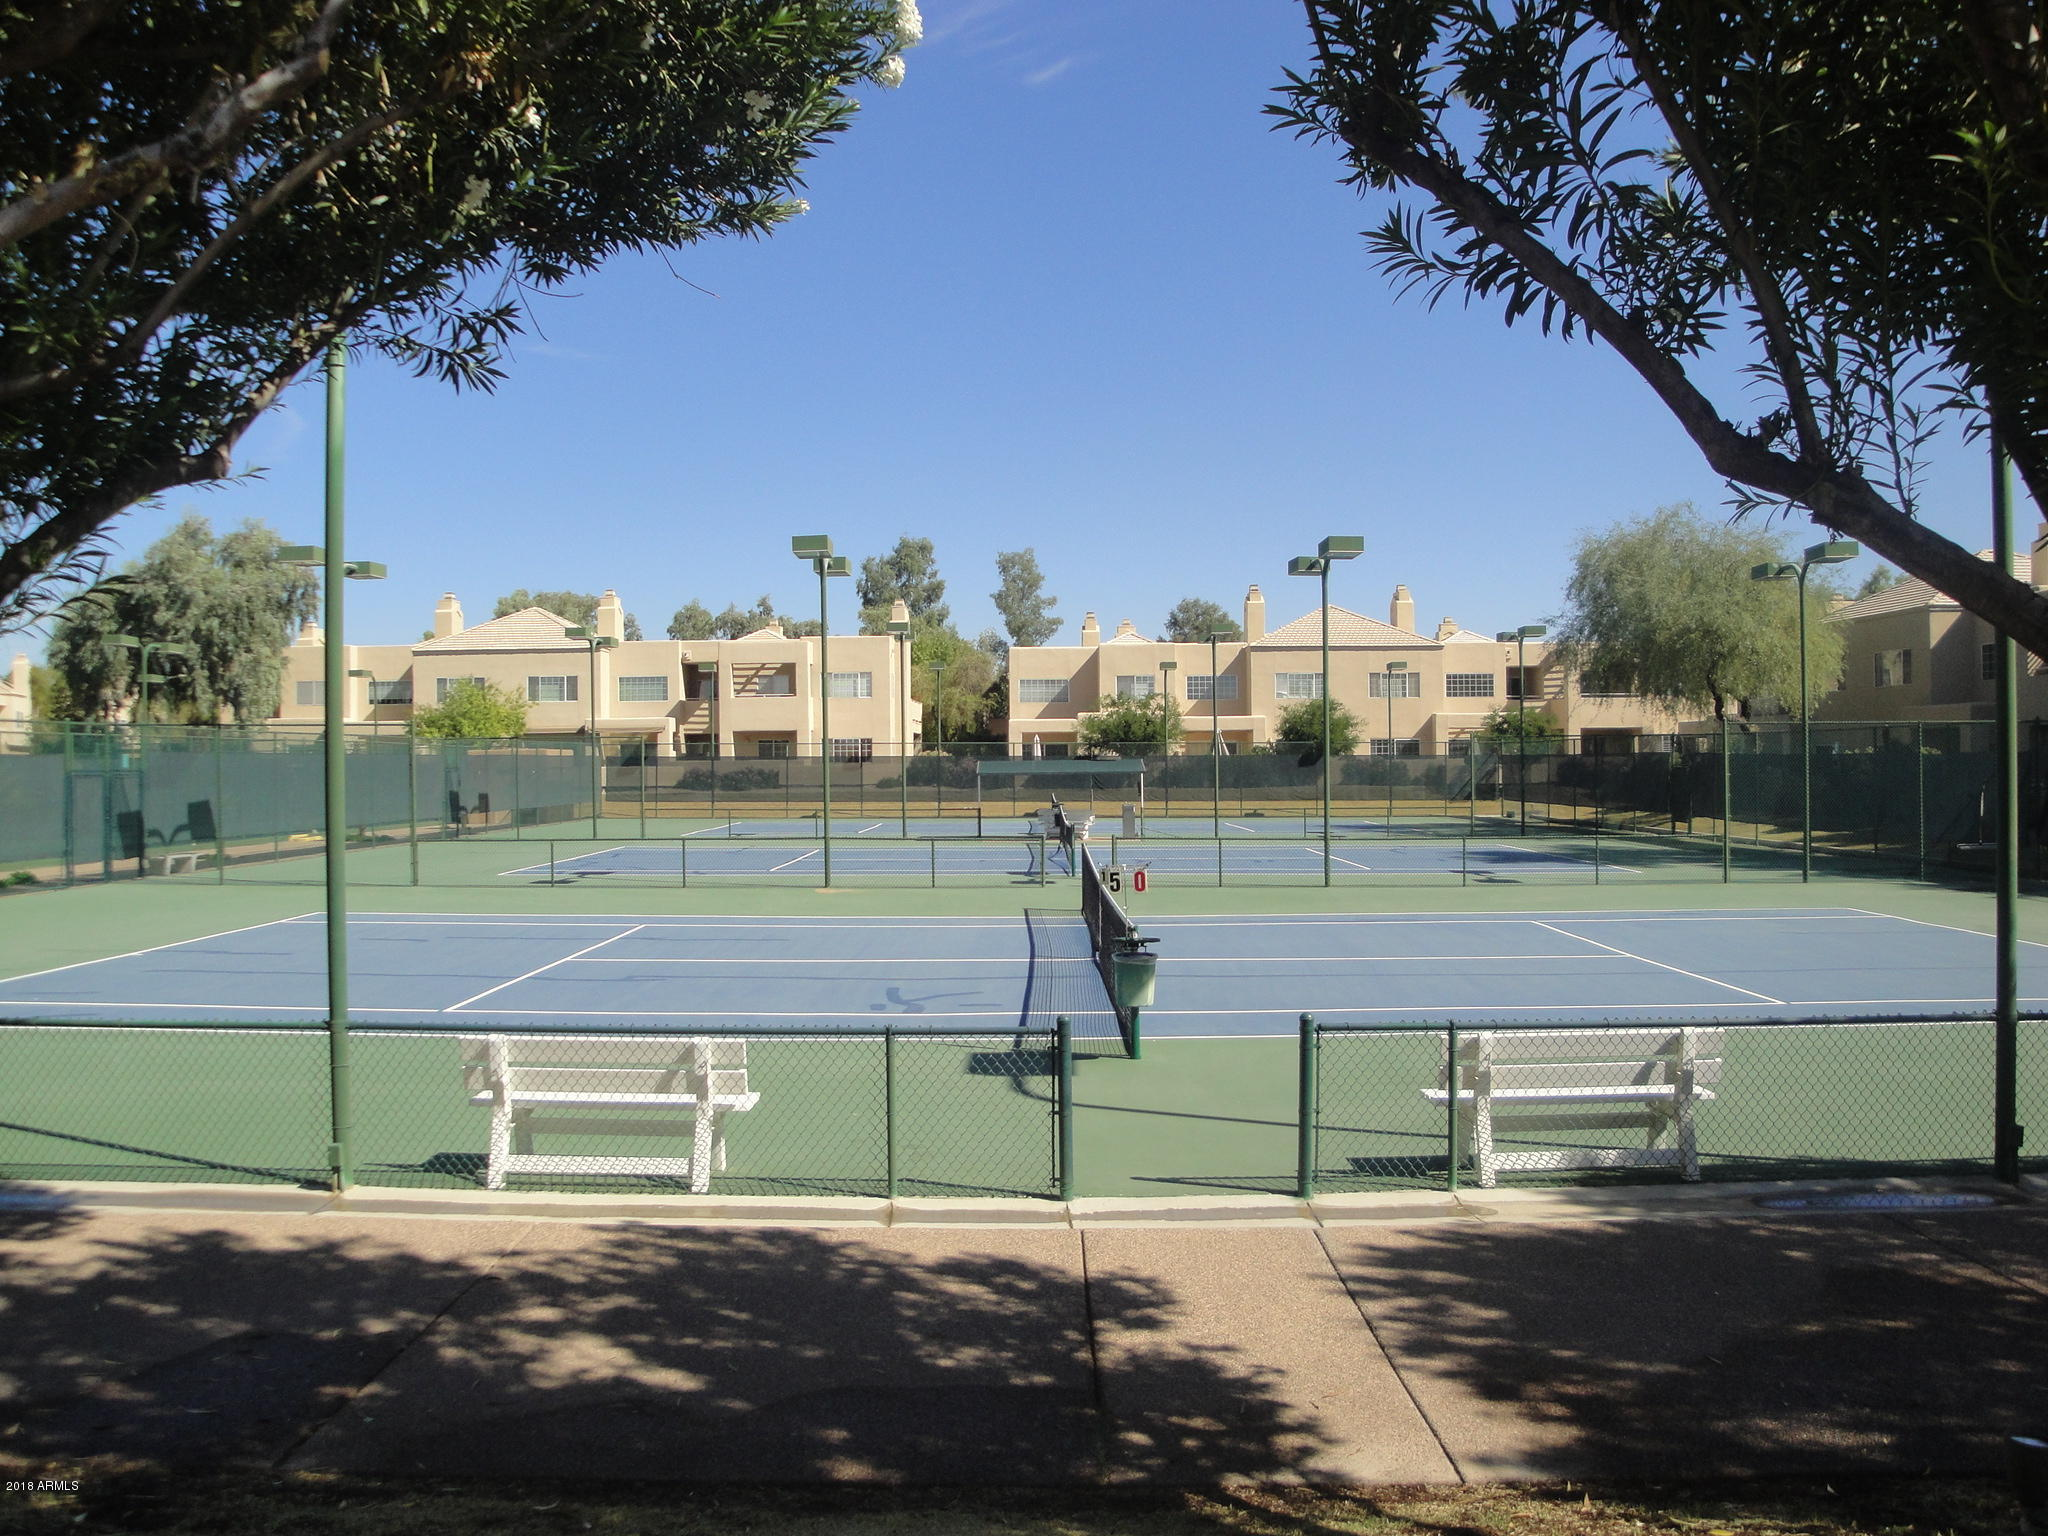 MLS 5971207 7272 E GAINEY RANCH Road Unit 63, Scottsdale, AZ 85258 Scottsdale AZ Gainey Ranch